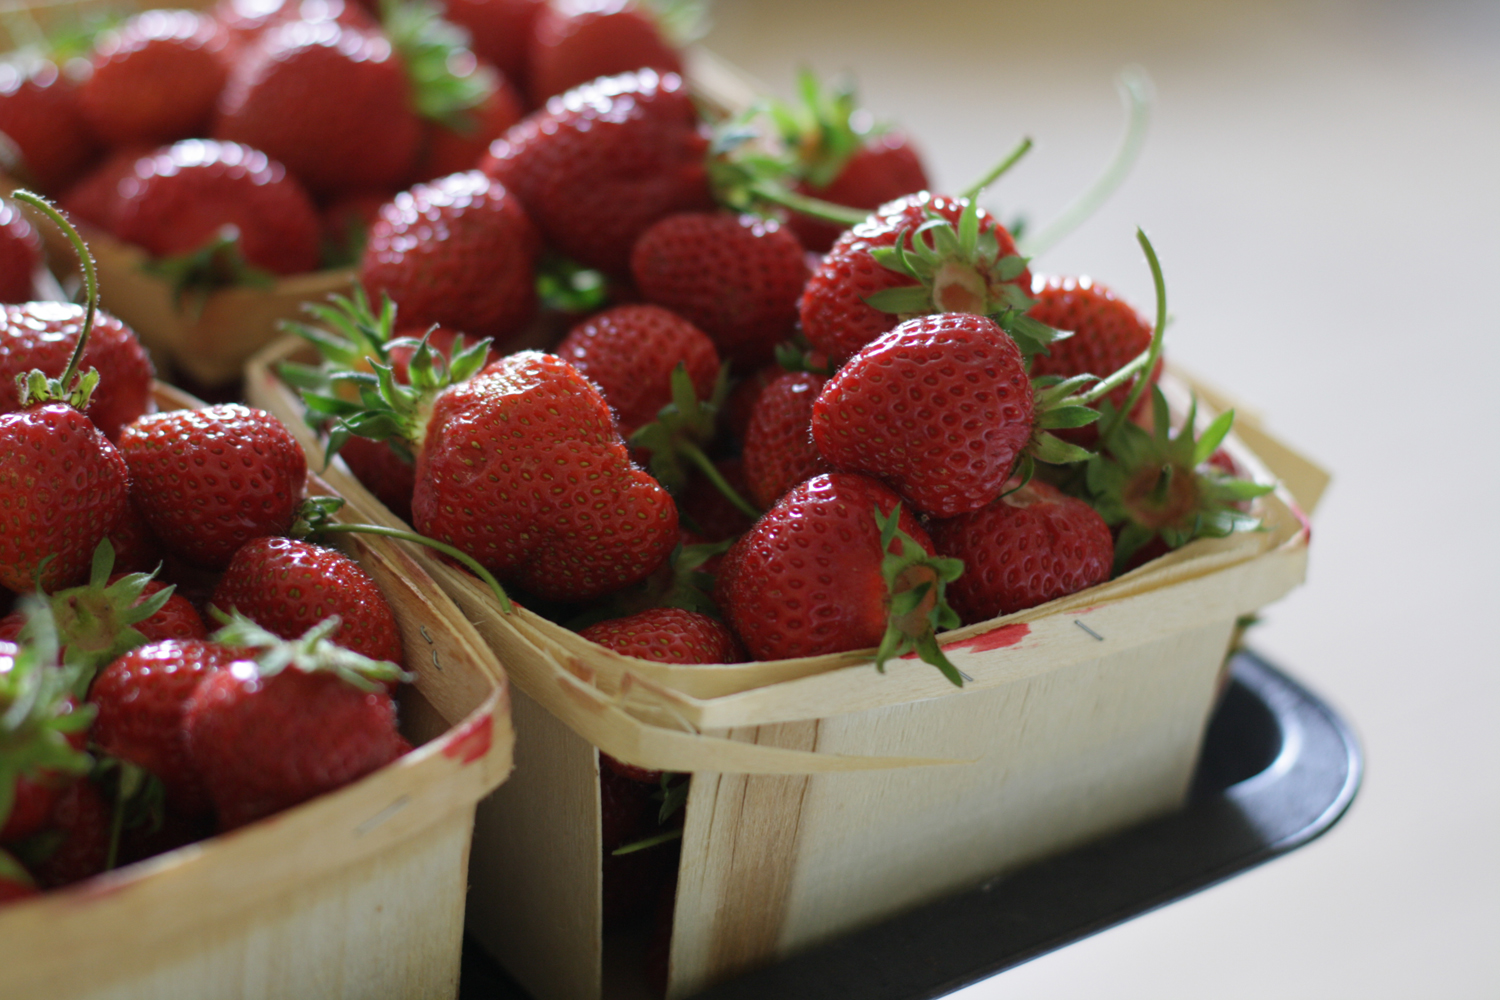 B16_Jul01_Strawberries_01.jpg